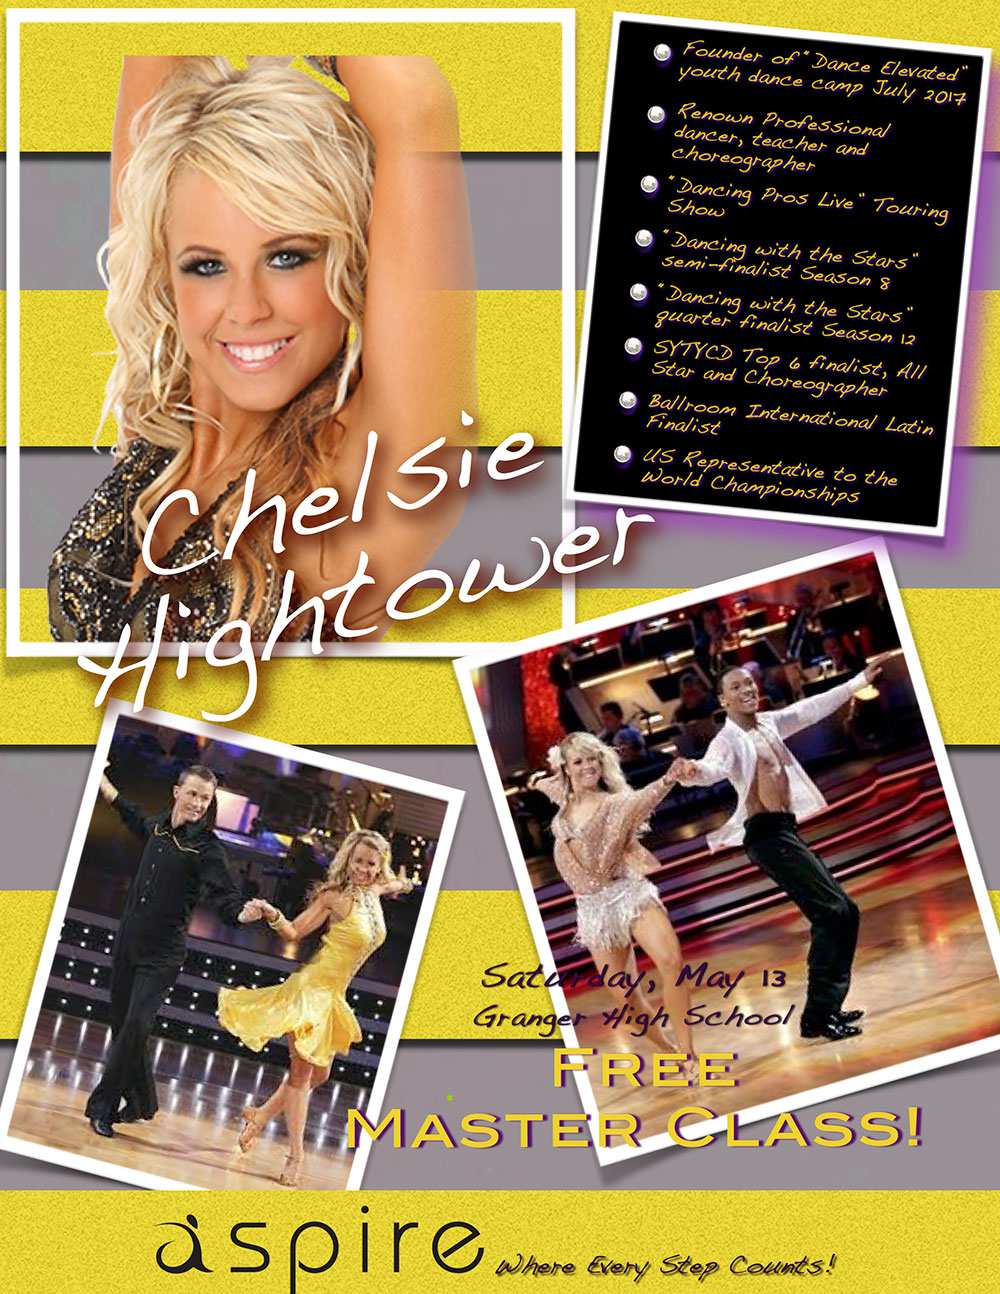 Chelsie Hightower - Aspire Dance Pro Commpetitions Masterclass Instructor